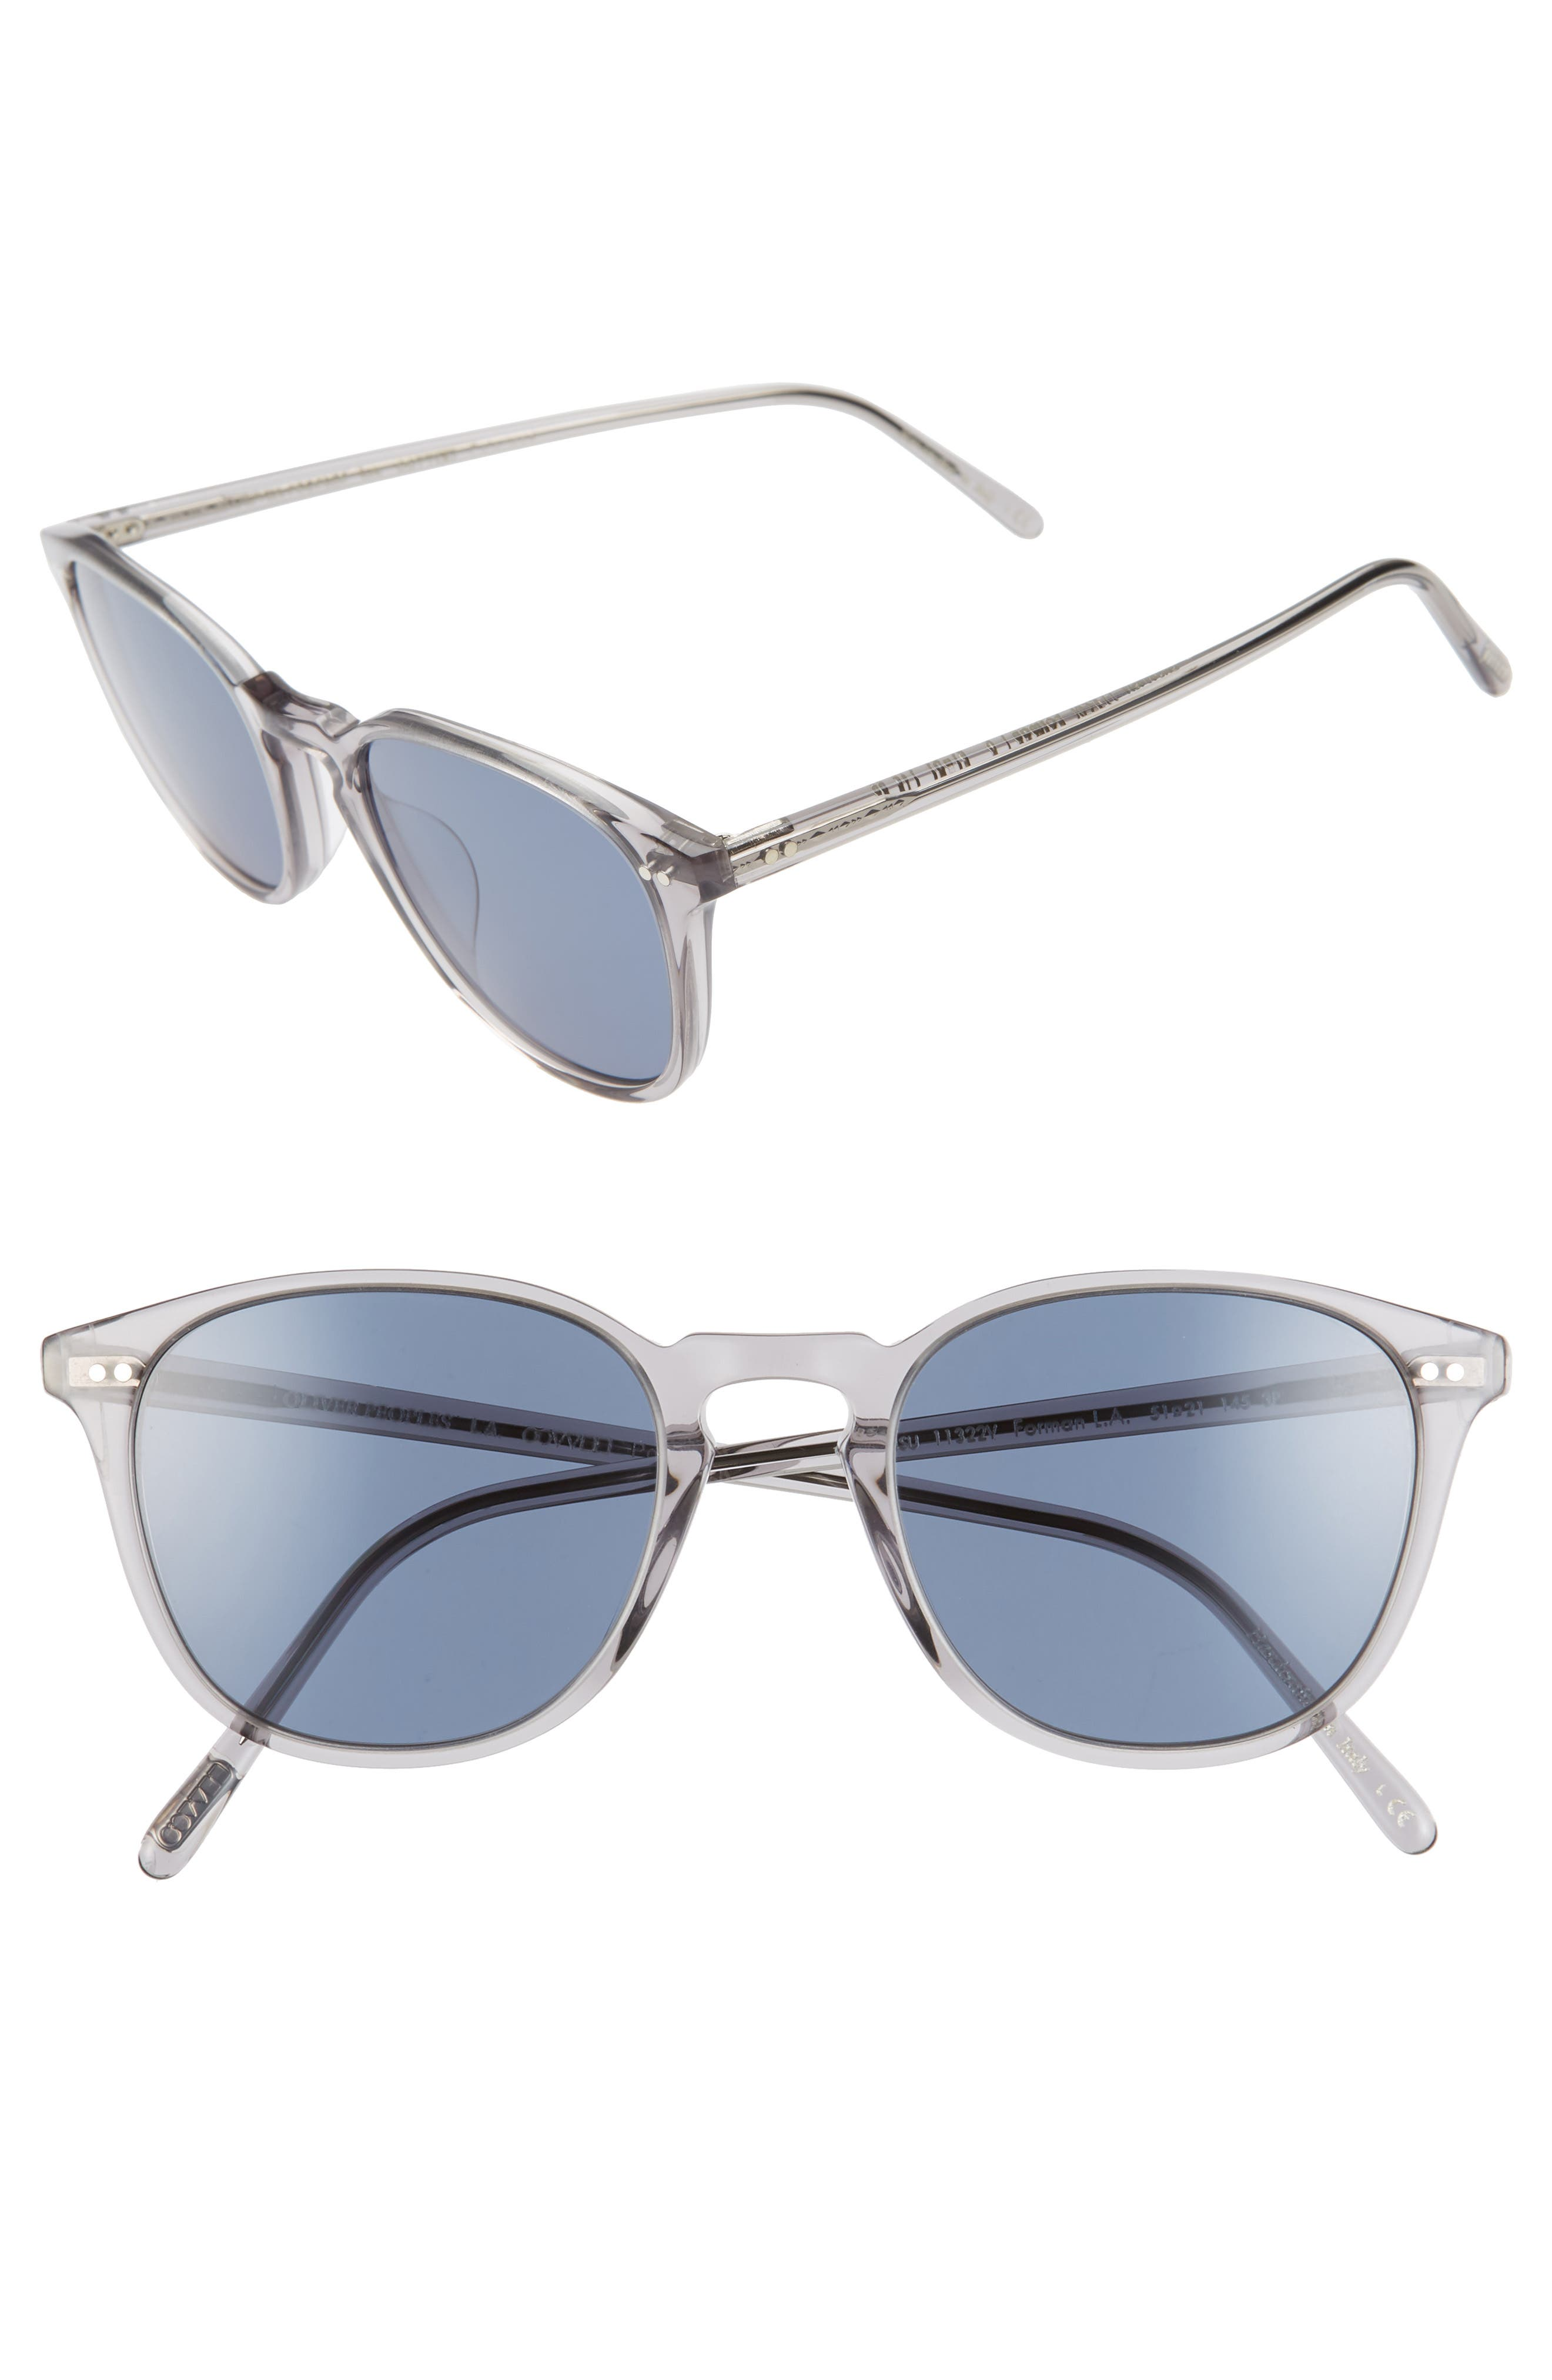 Oliver Peoples Forman L.a. 51Mm Polarized Round Sunglasses - Workman Grey/ Blue